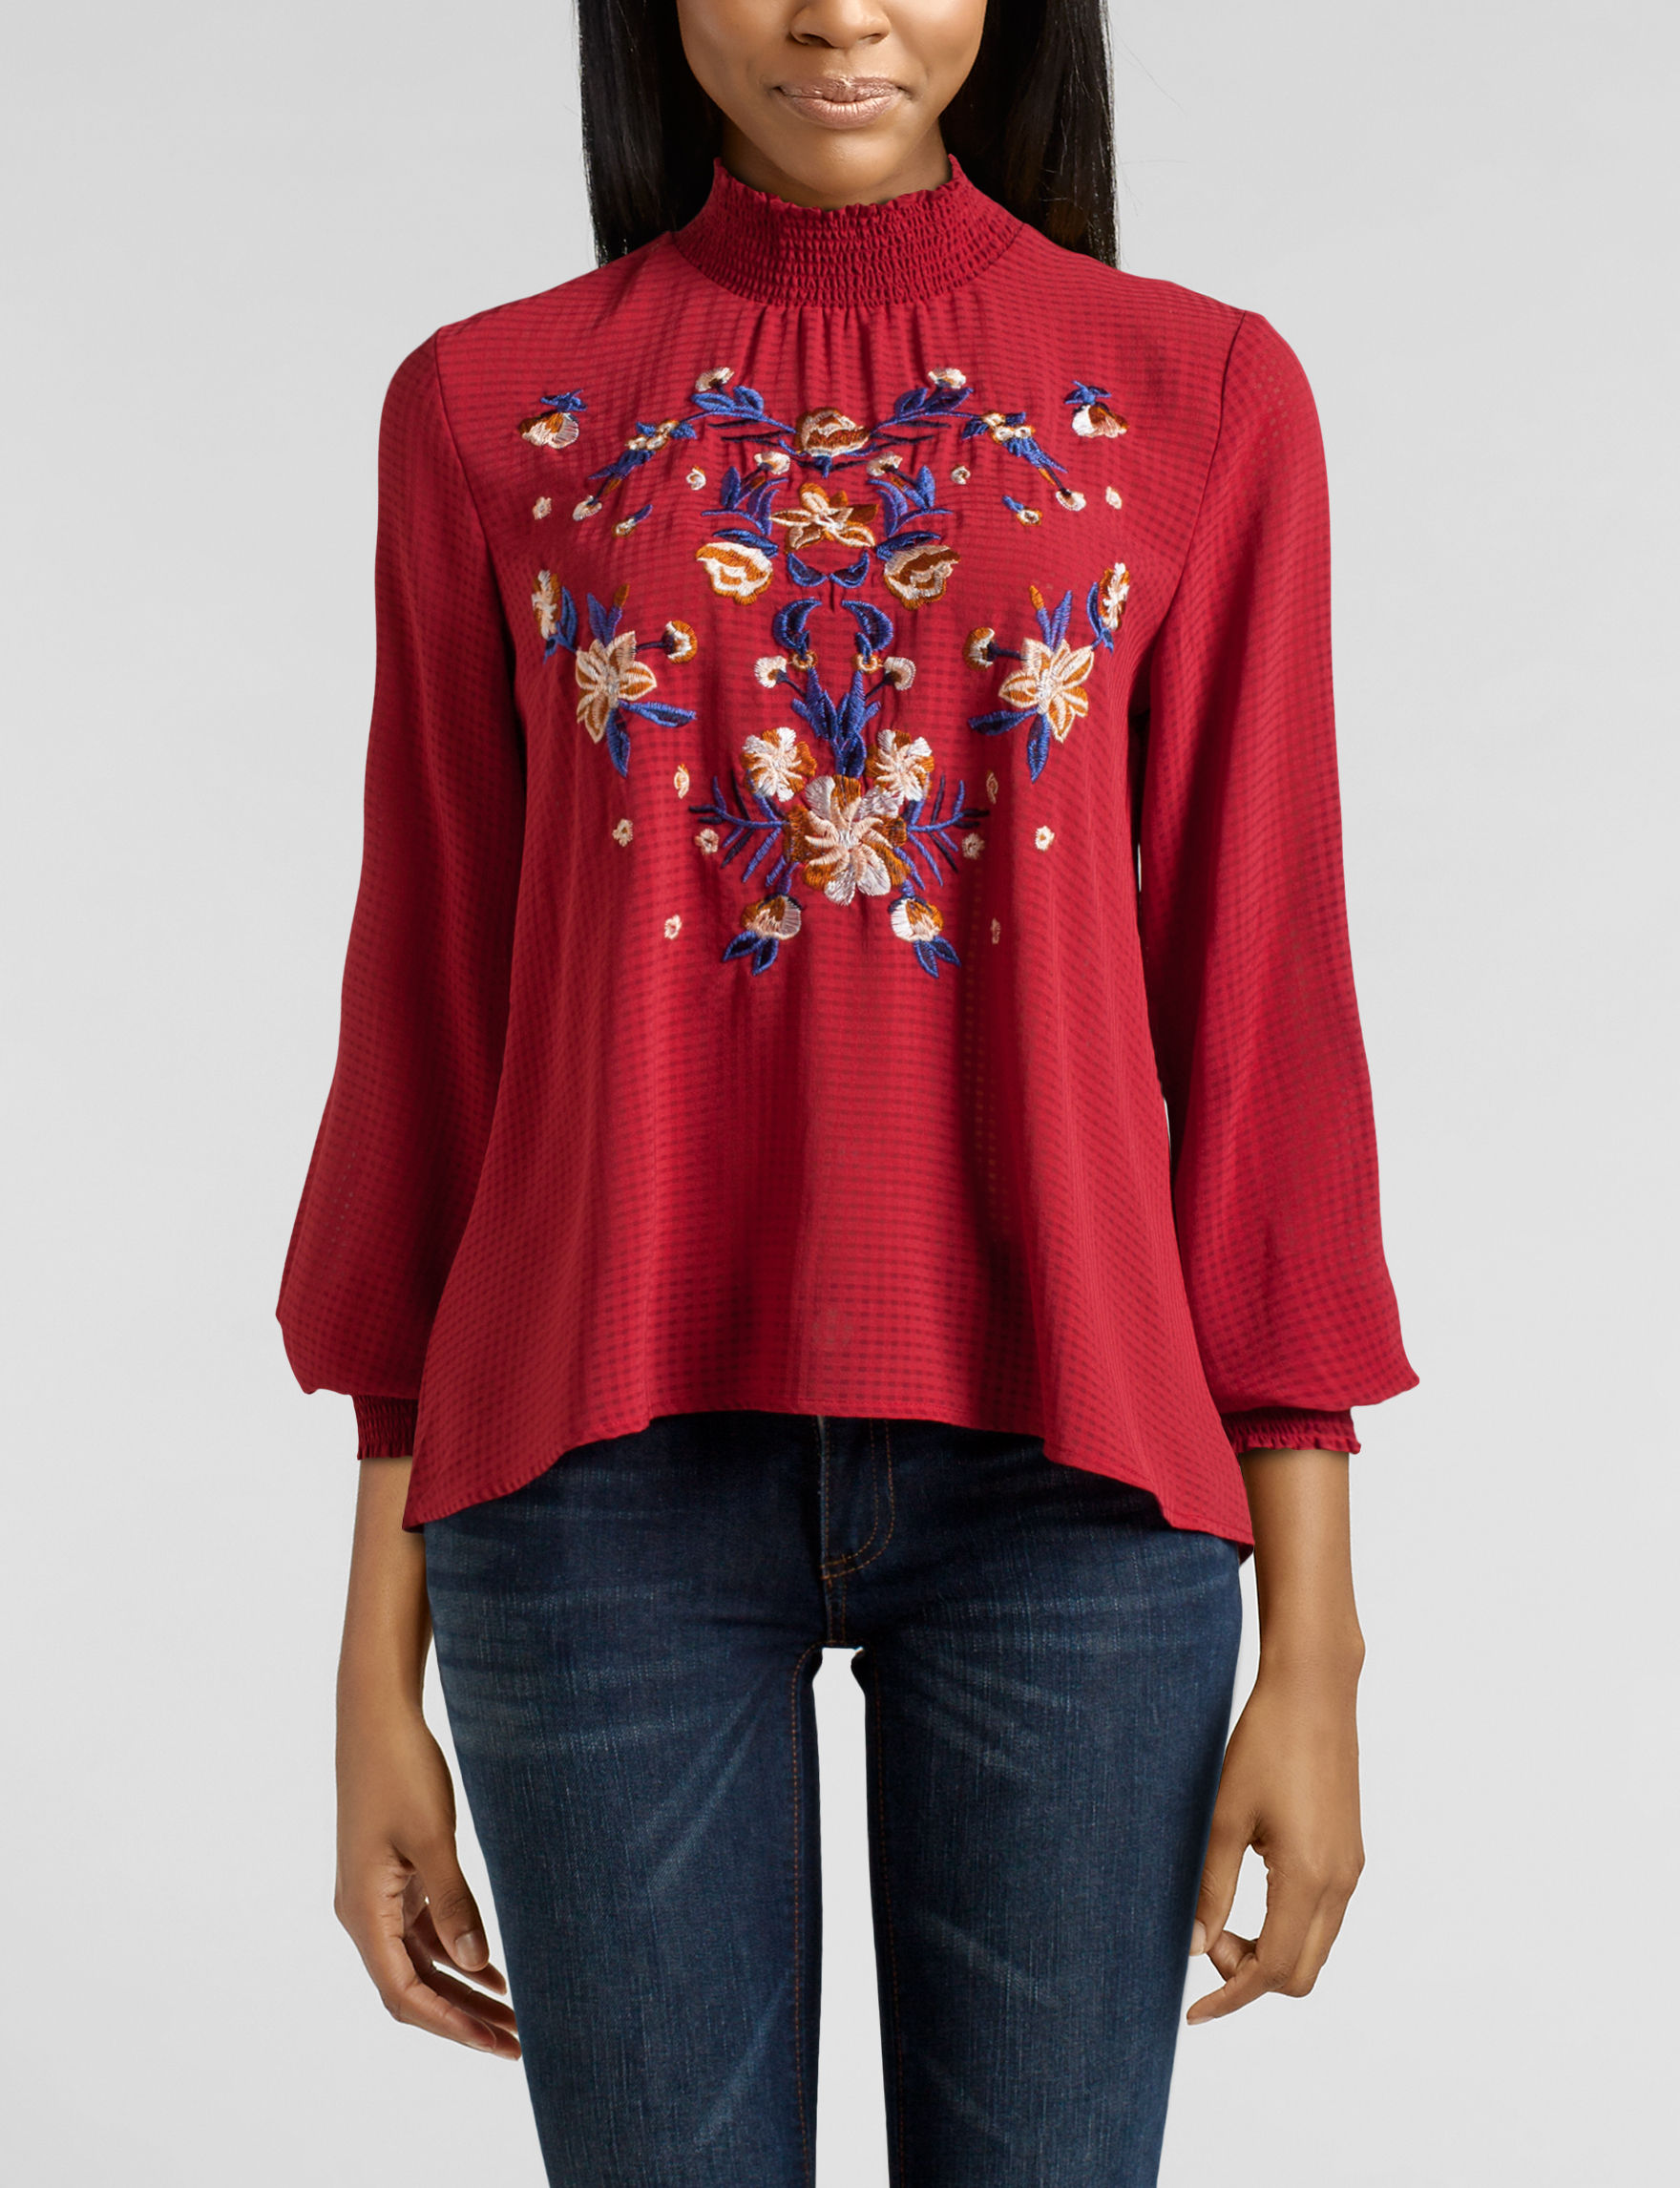 Heart Soul Red Shirts & Blouses